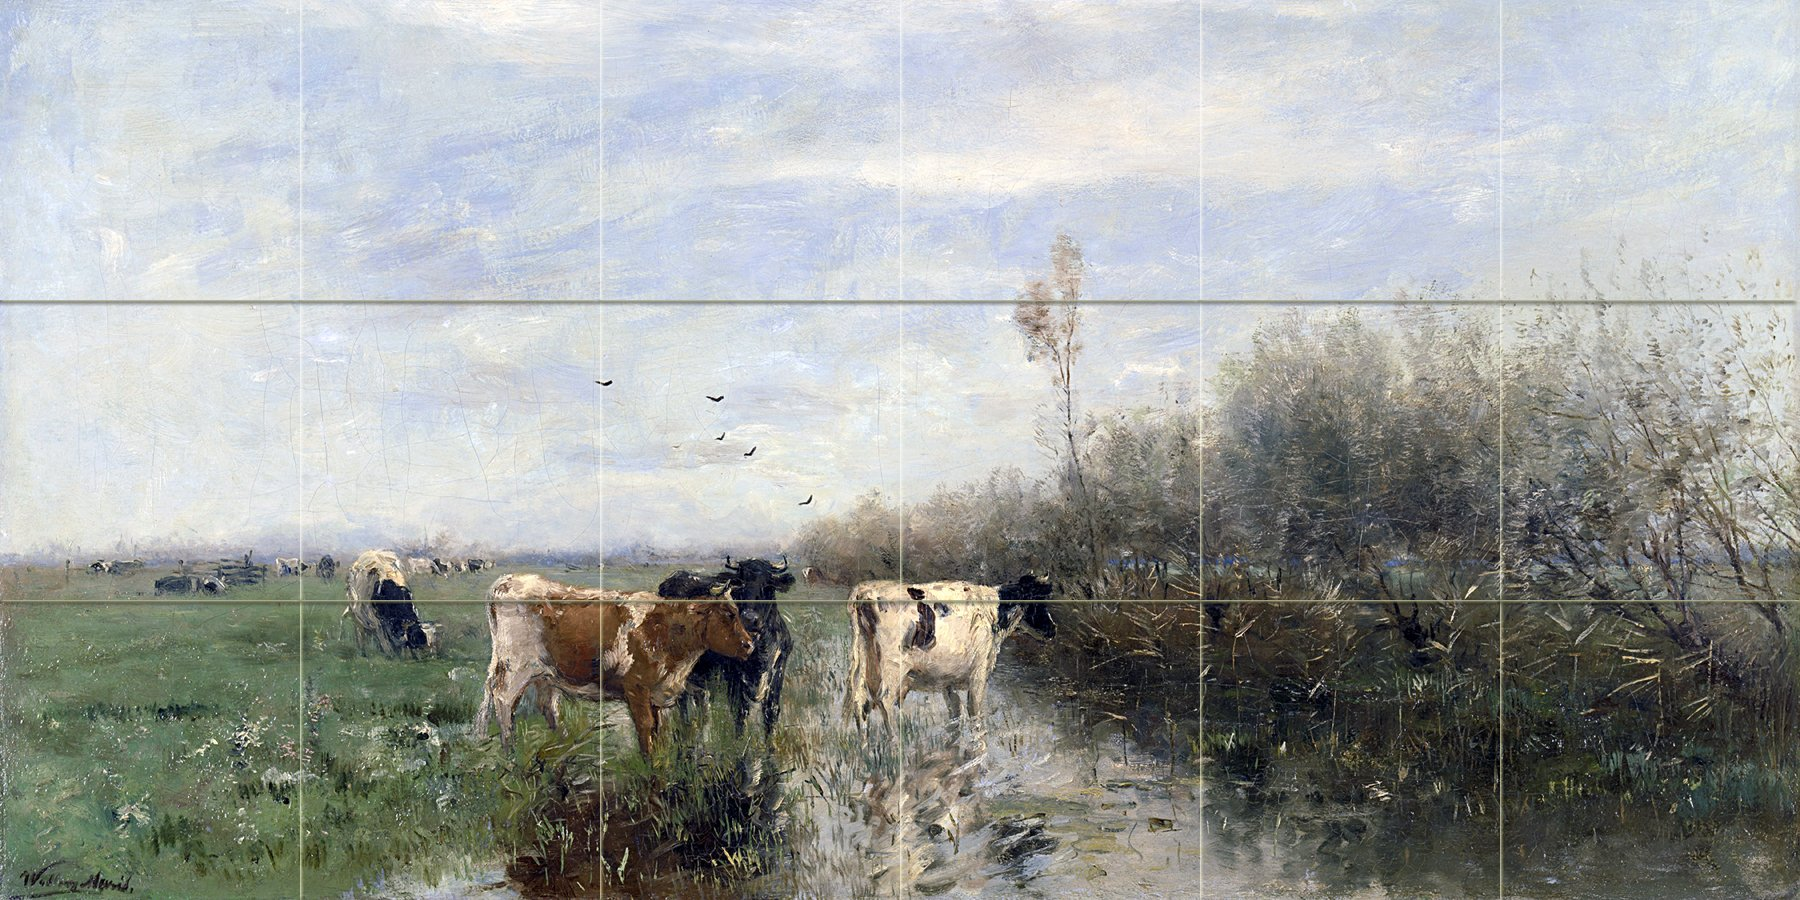 Cows in a meadow by Willem Maris Tile Mural Kitchen Bathroom Wall Backsplash Behind Stove Range Sink Splashback 6x3 4.25'' Ceramic, Glossy by FlekmanArt